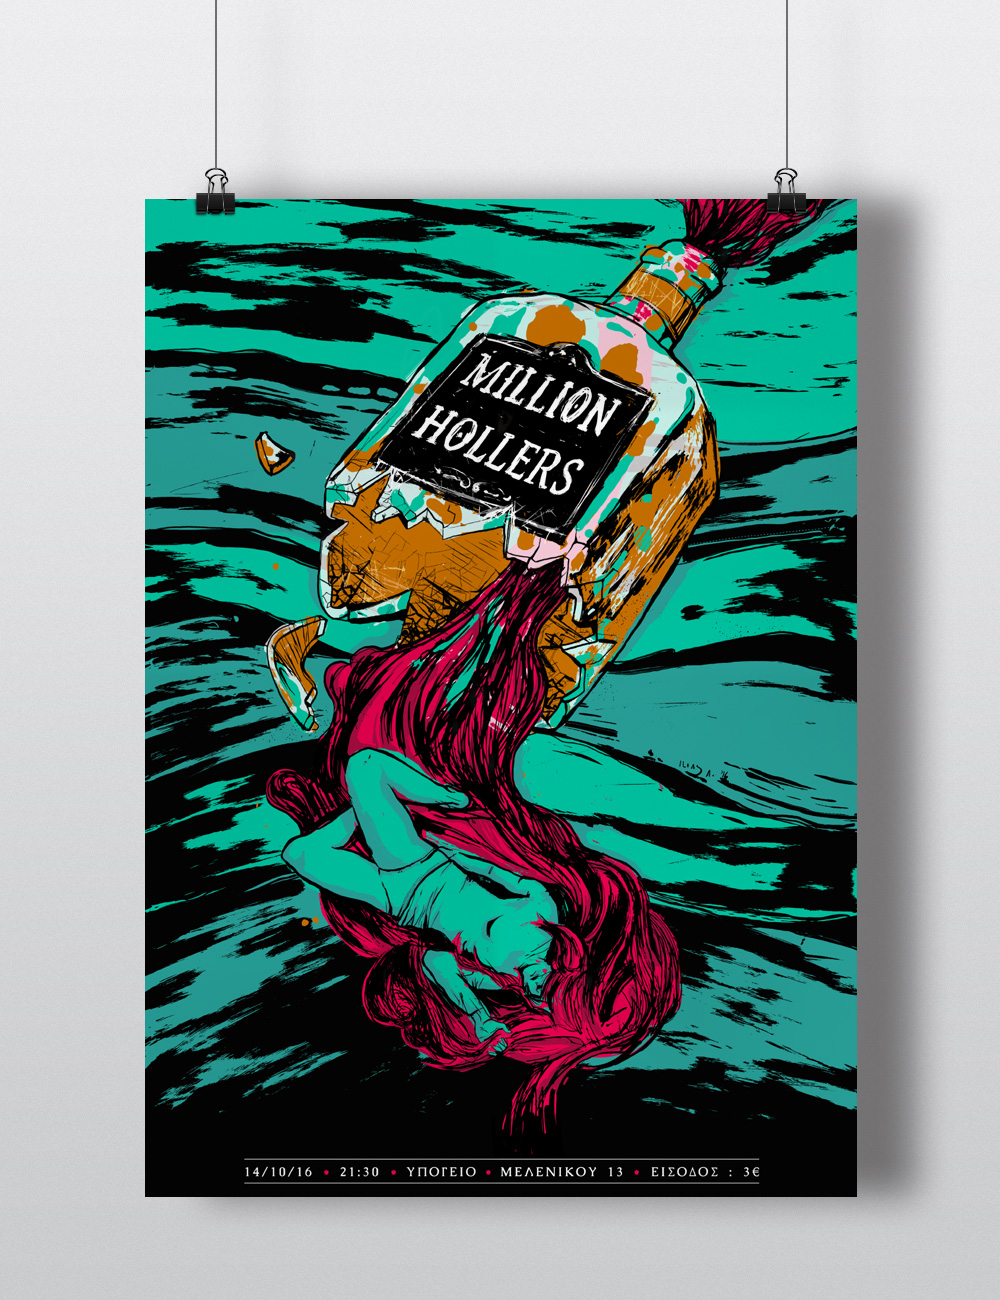 Million Hollers live at Ypogeio, Thessaloniki poster illustration and layout.